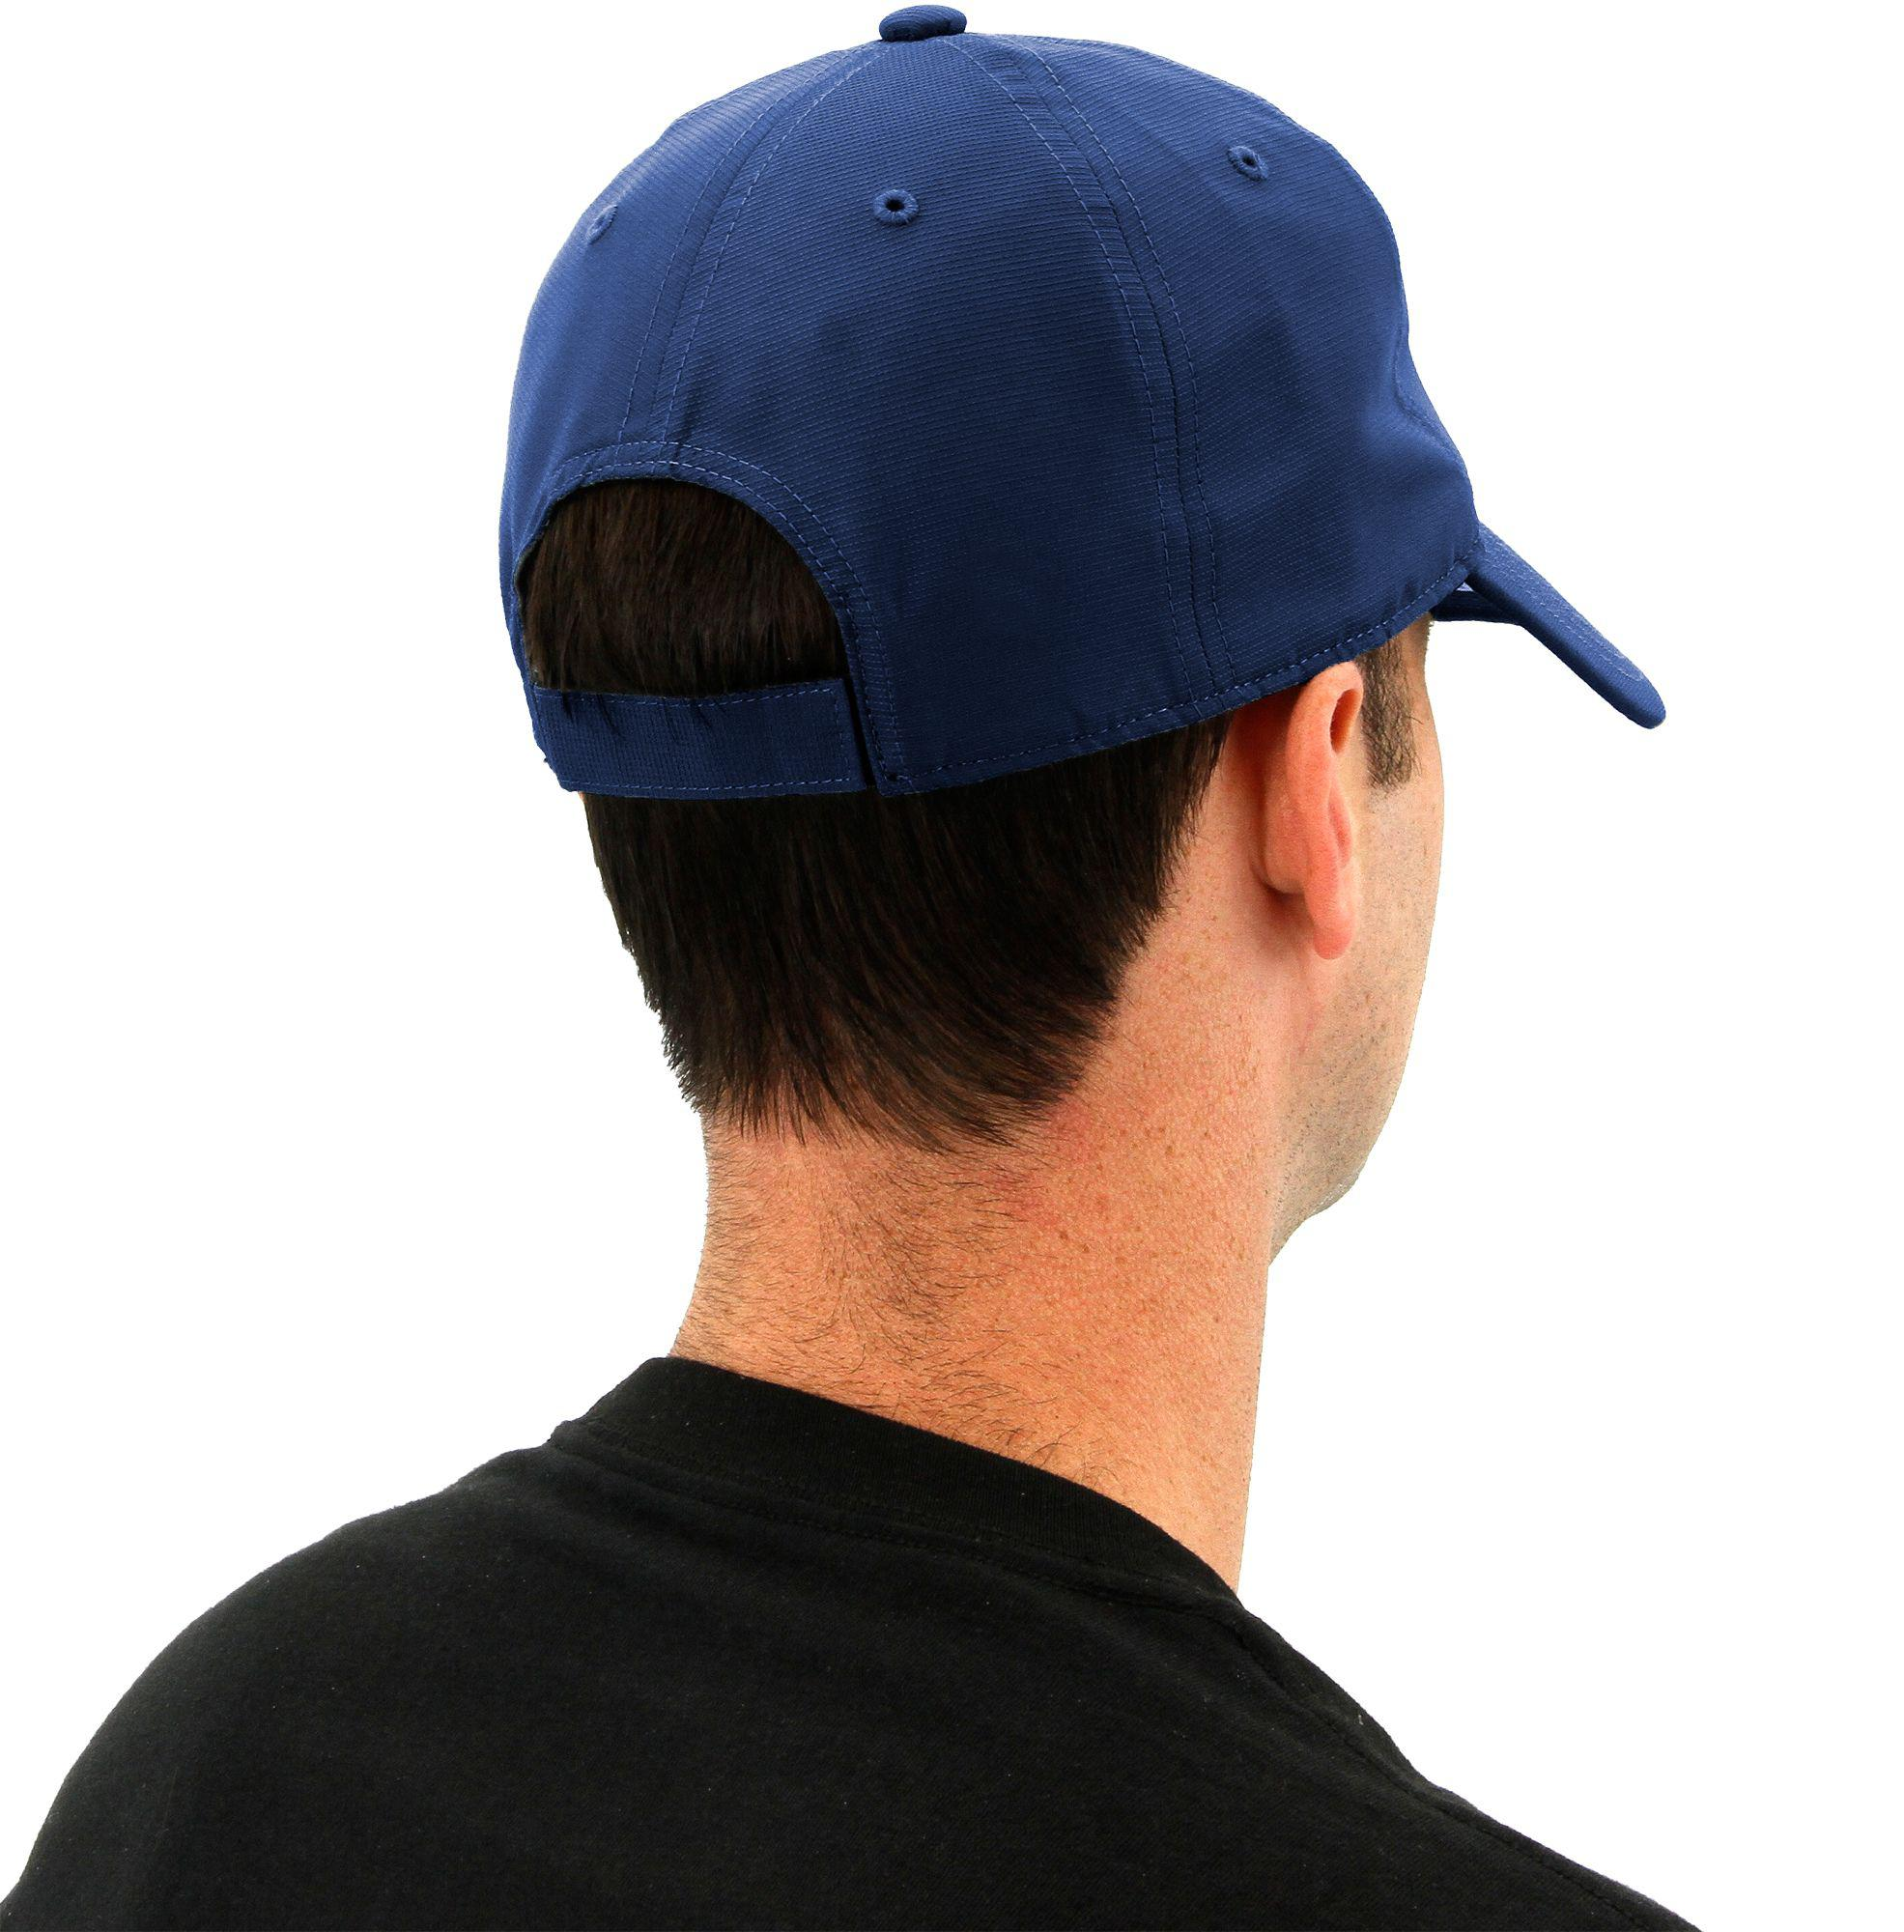 e3c699a8ef adidas Originals Relaxed Modern Cap in Blue for Men - Lyst